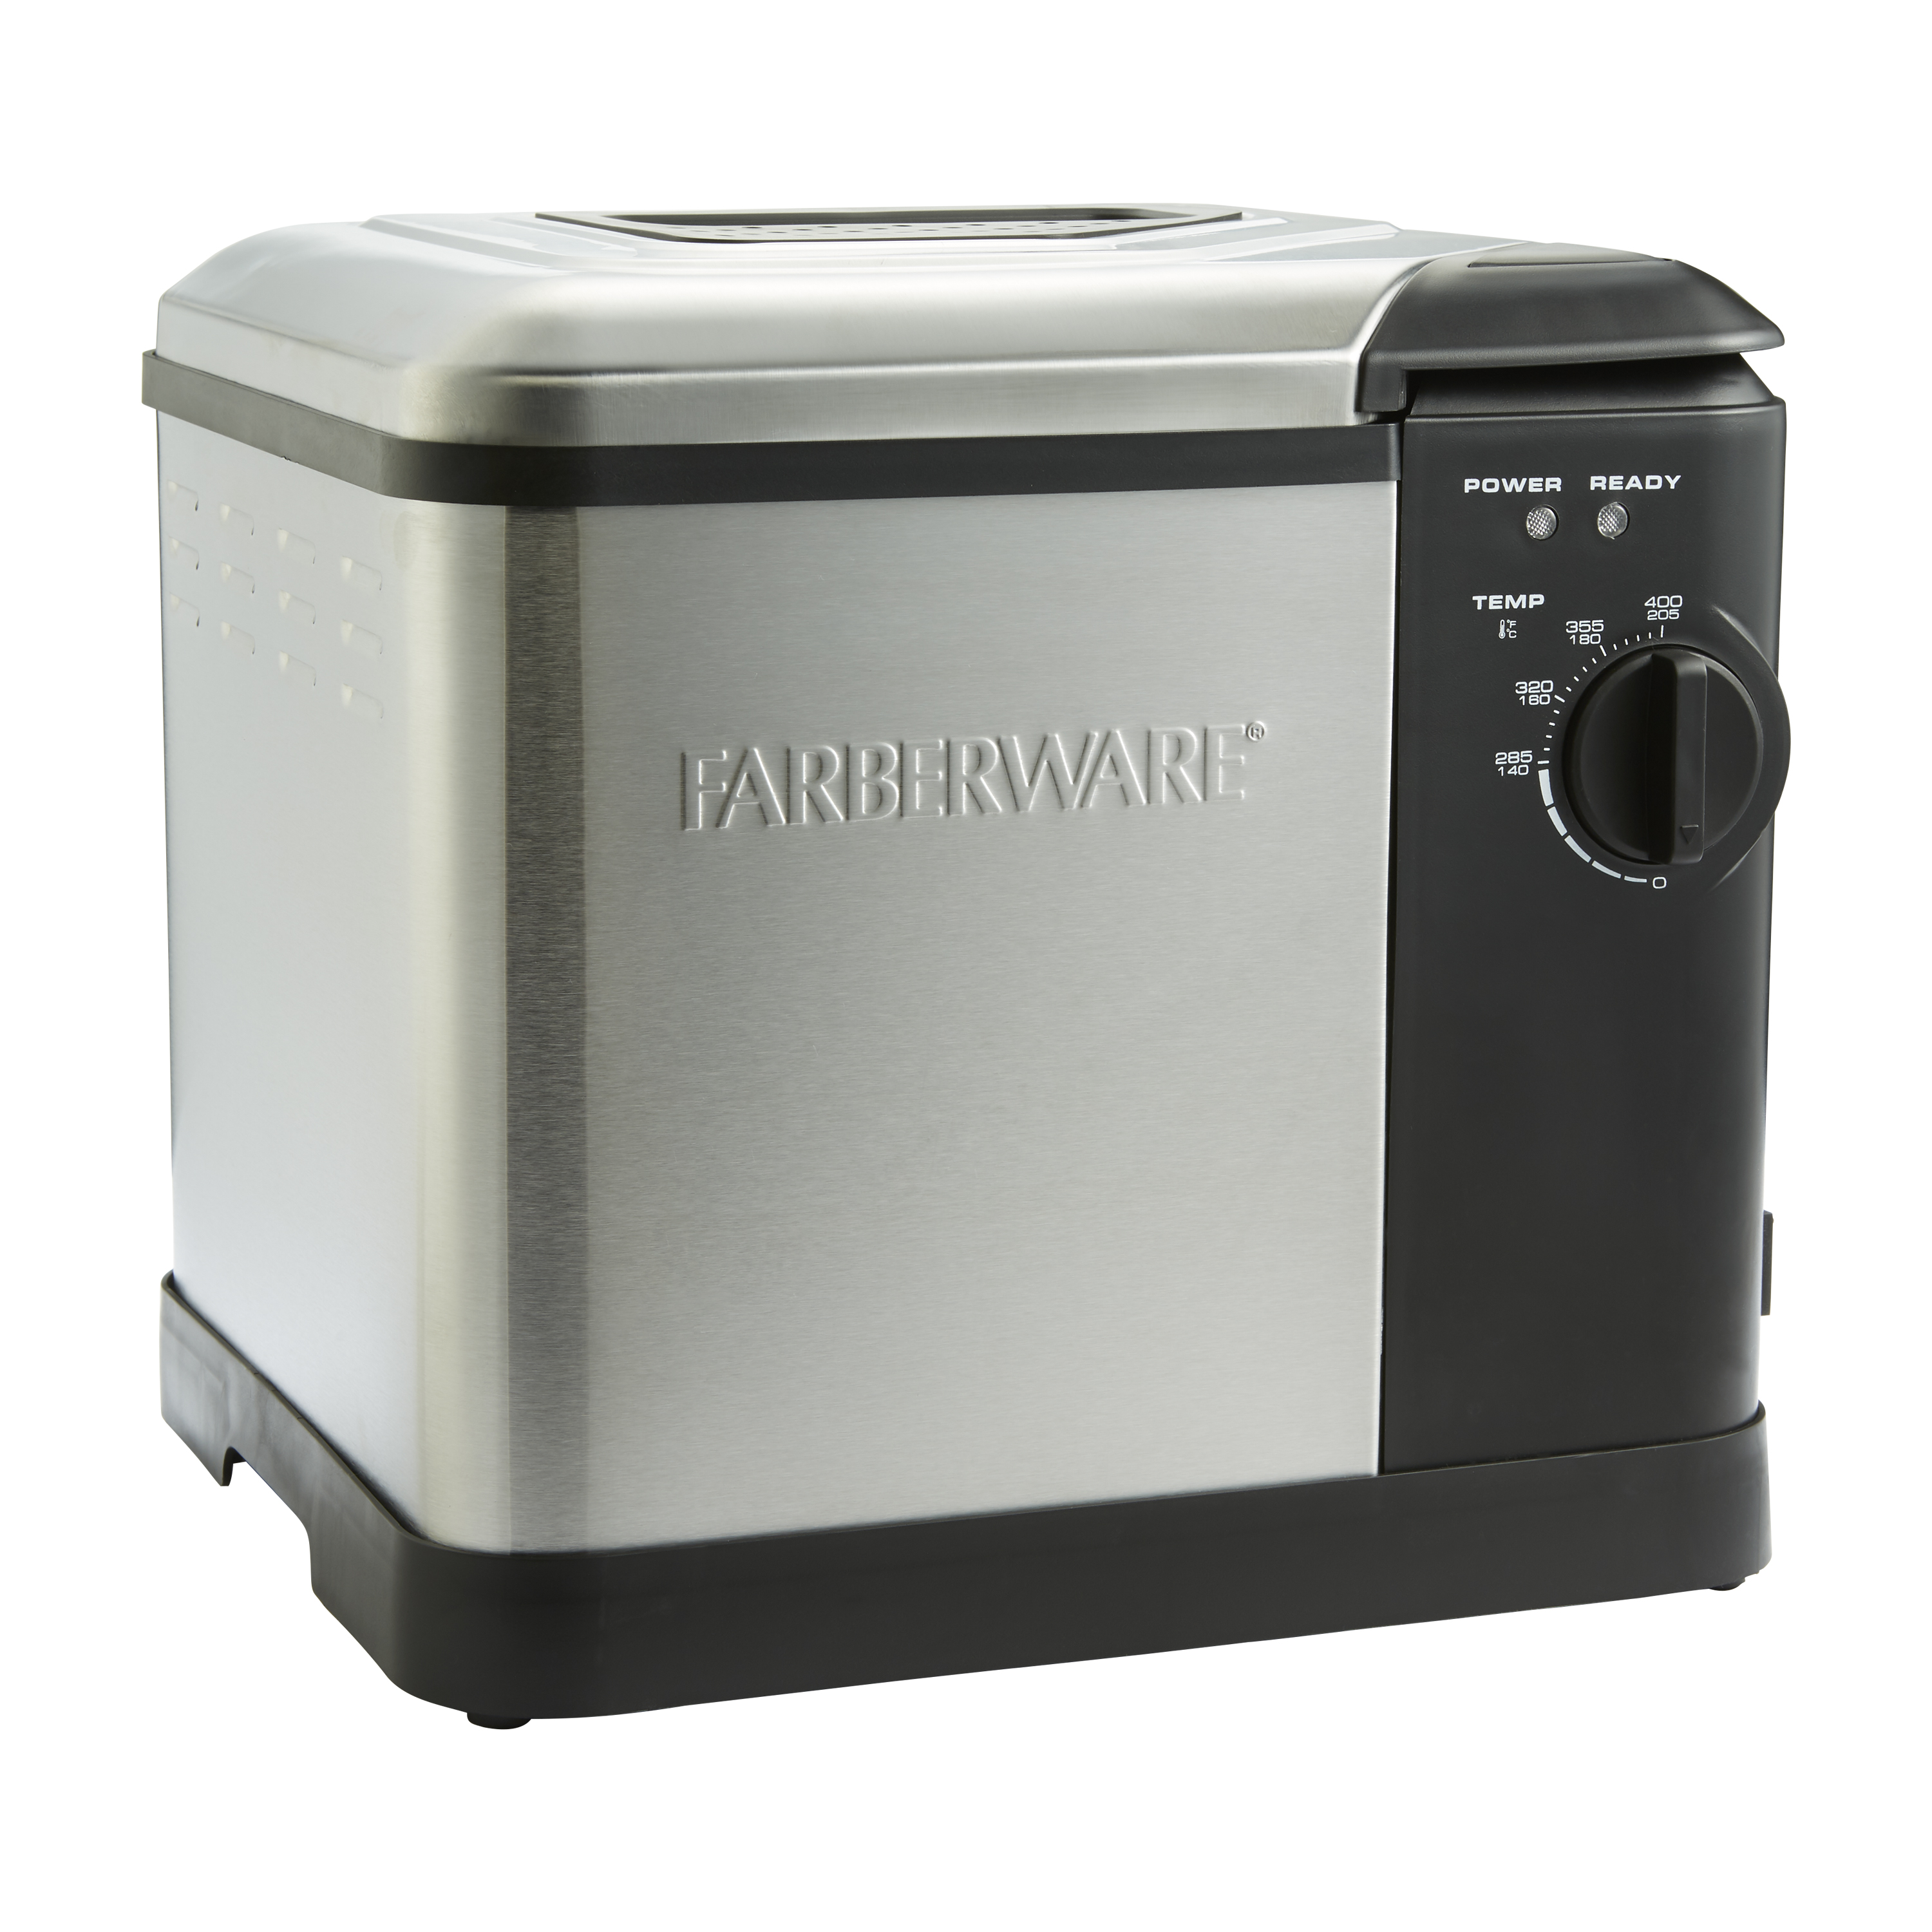 Farberware Extra Large Capacity Deep Fryer Cooks Up to 14-lbs. of Food